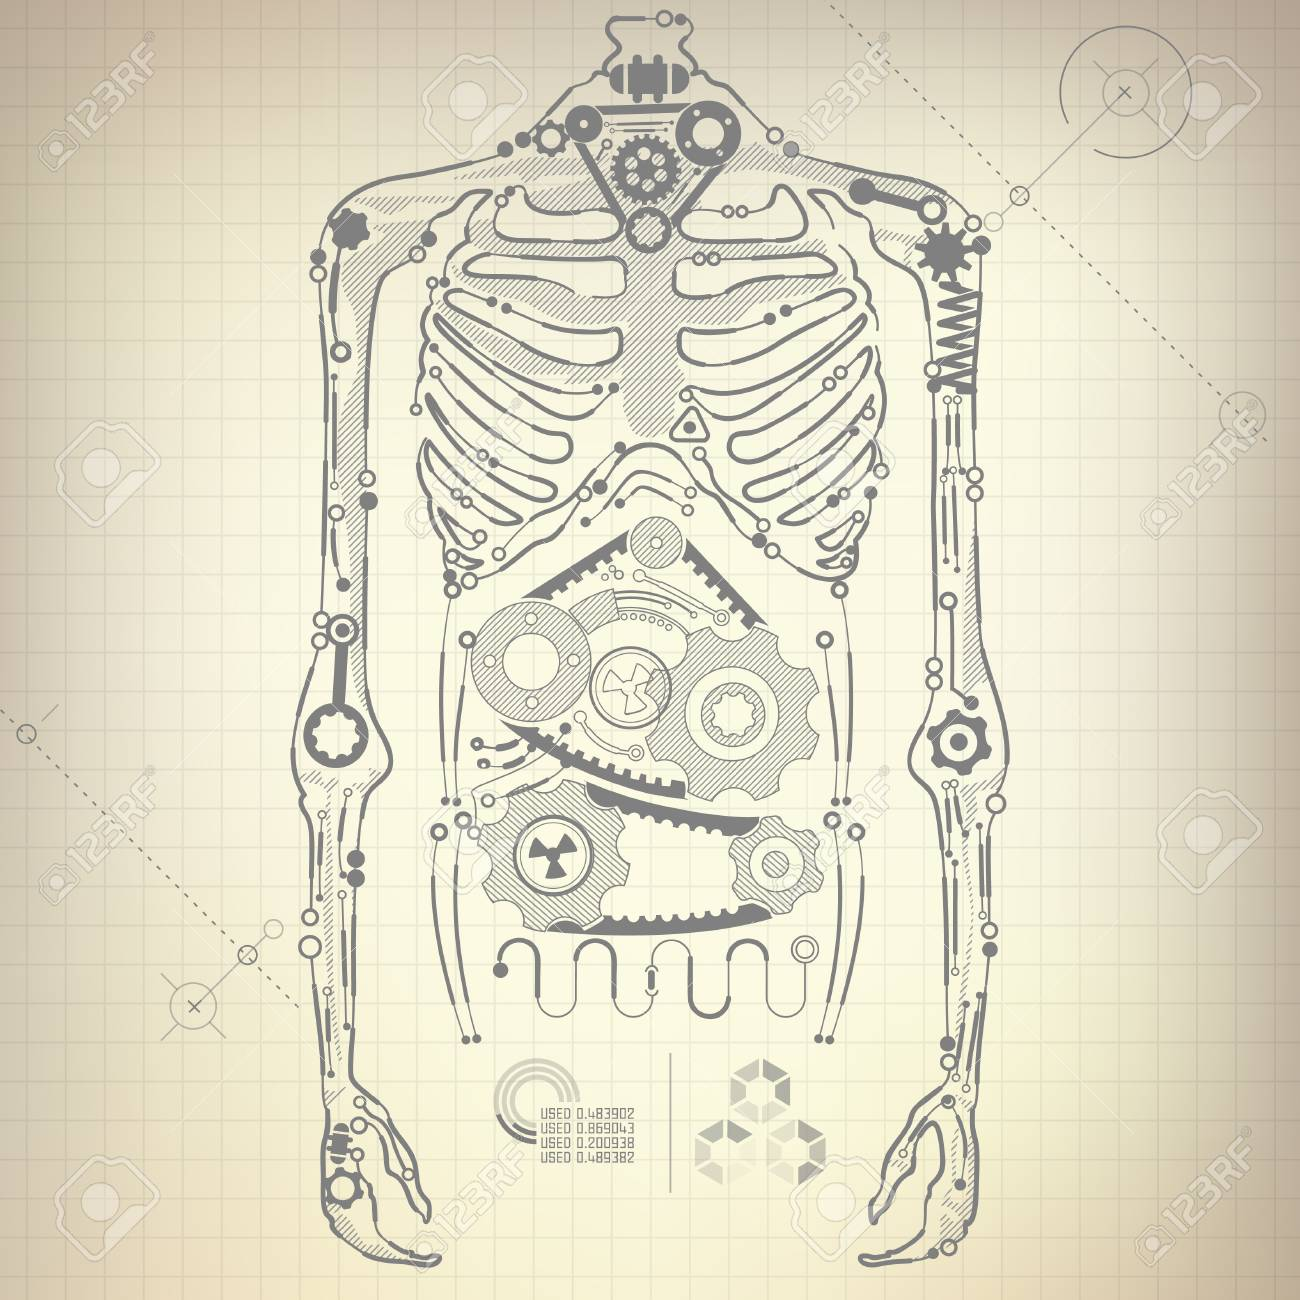 Concept of blueprint of ai invention robot body diagram royalty concept of blueprint of ai invention robot body diagram stock vector 81713129 malvernweather Image collections